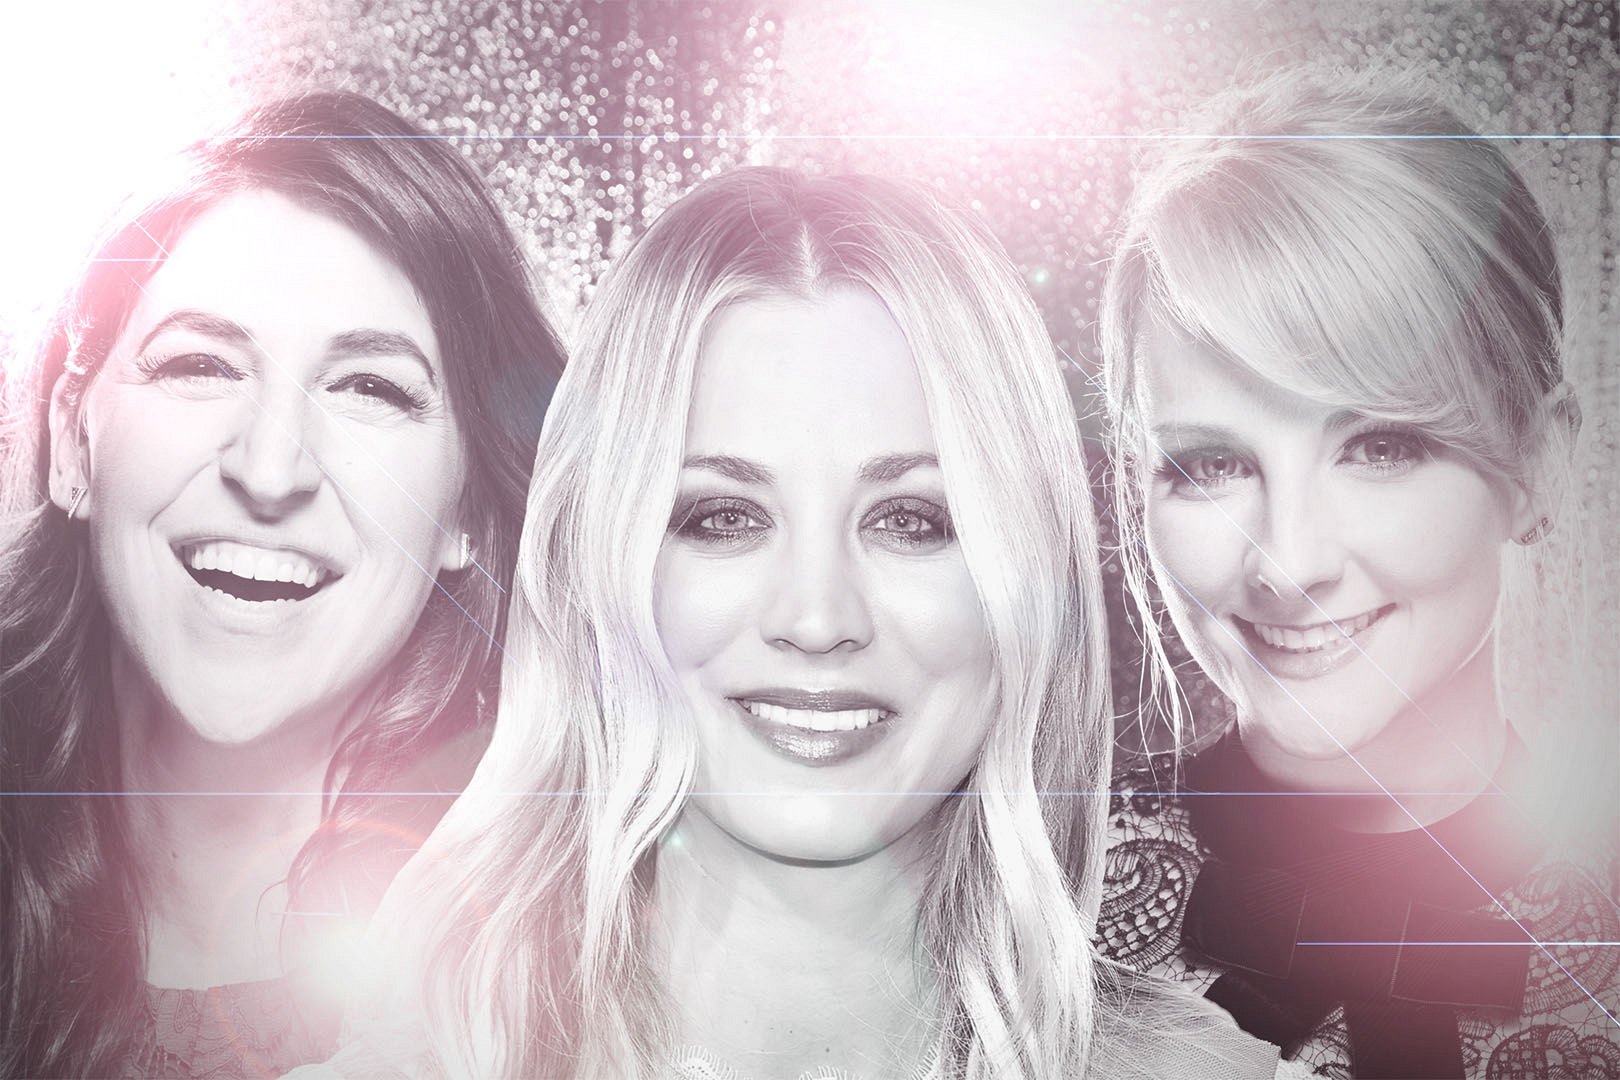 Can The Big Bang Theory ladies get any more beautiful?